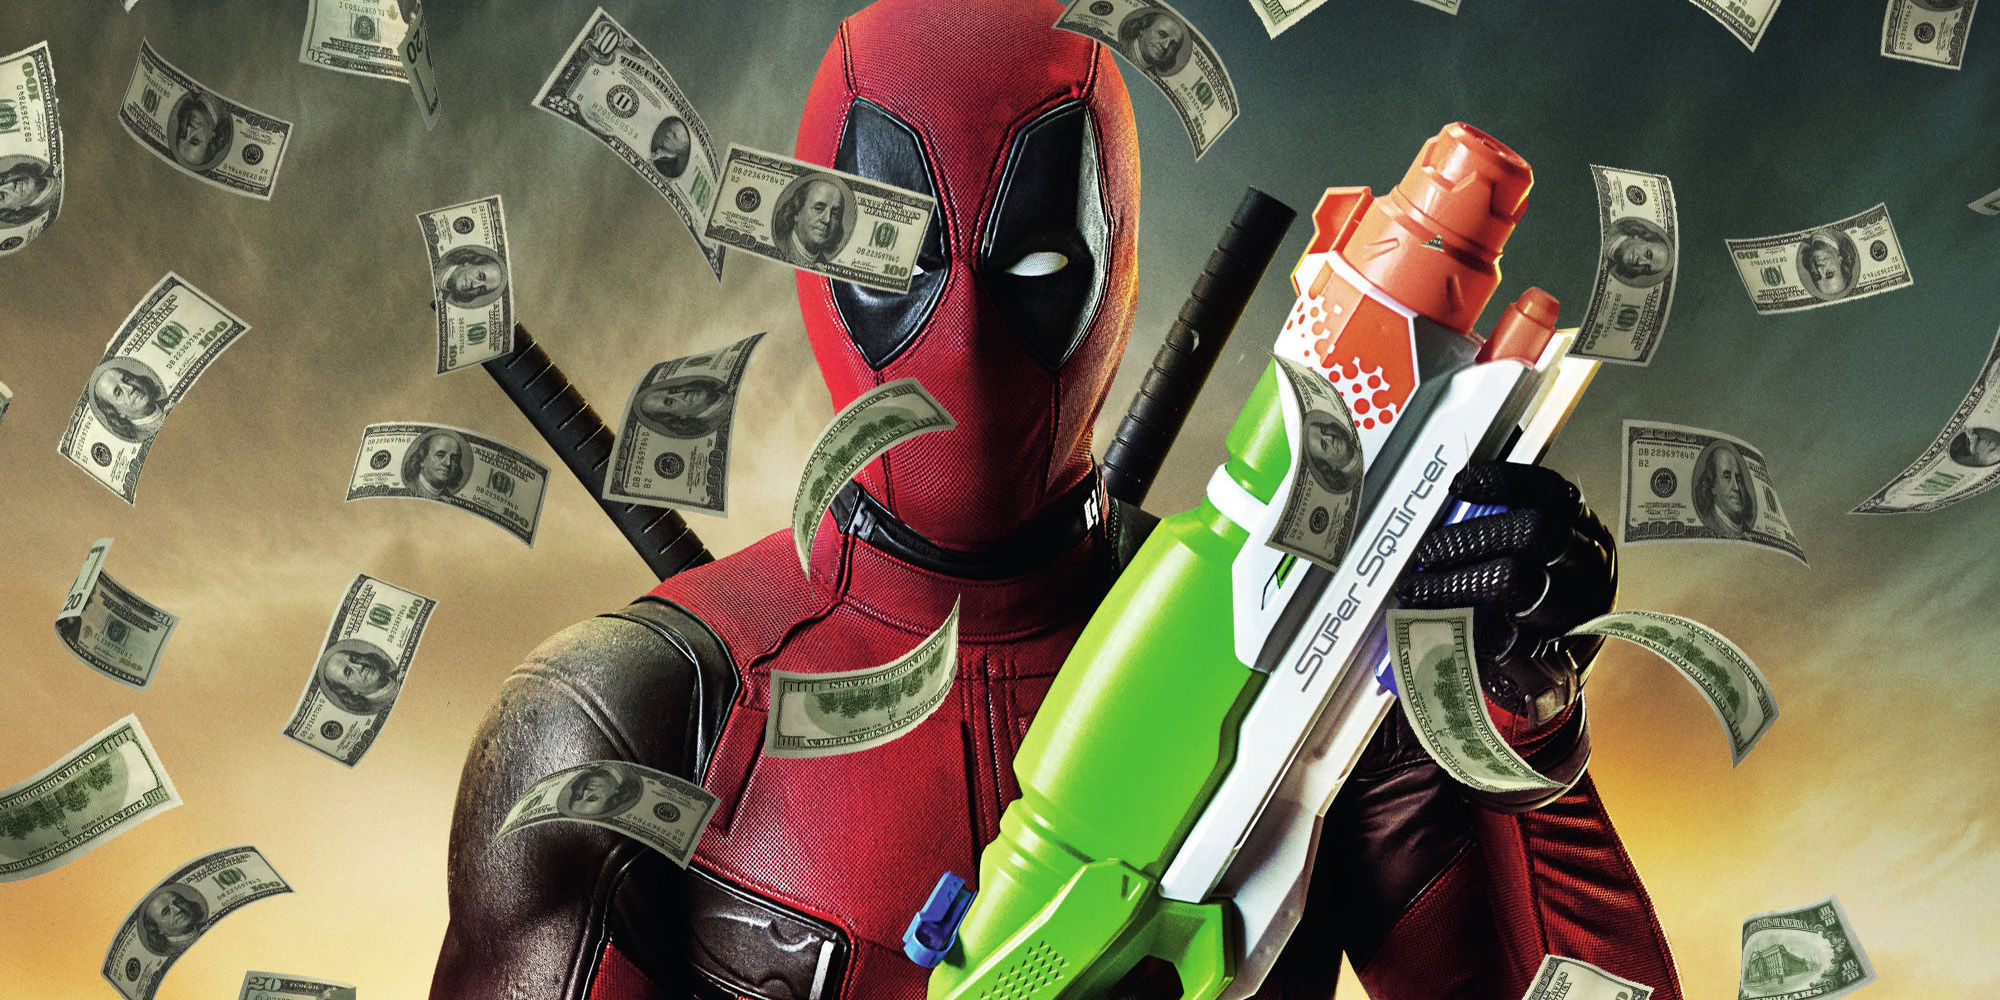 Deadpool Sets Box fice Record As Top R rated Movie Ever